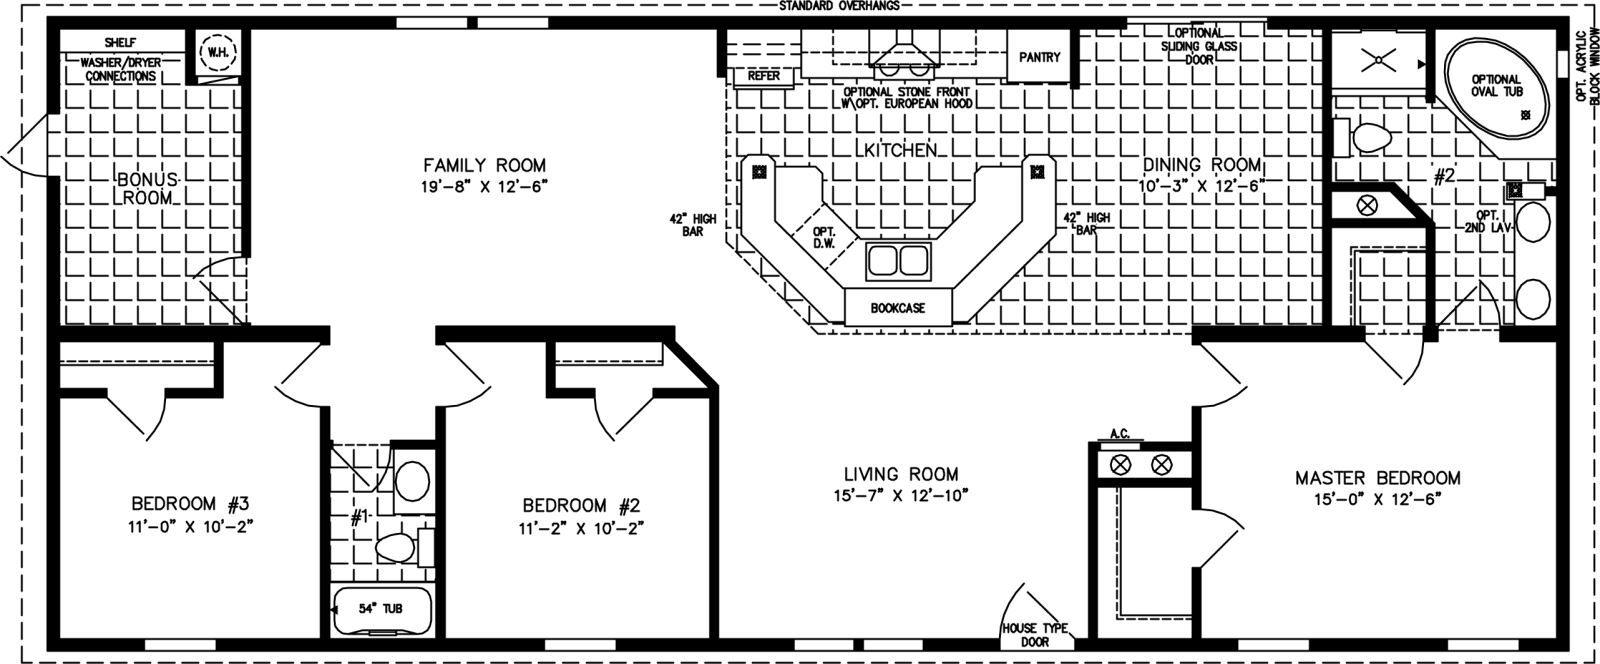 65eda2a5a4f105e5 Small 2 Bedroom House Plans 1000 Sq Ft Small 2 Bedroom Floor Plans furthermore 3 Bed 2 Story Home Plans further Single Story Open Floor Plans in addition House Exterior Ideas moreover Floor Plan For A Small House 1150 Sf With 3 Bedrooms And 2 Baths. on modern bungalow house plans 3br